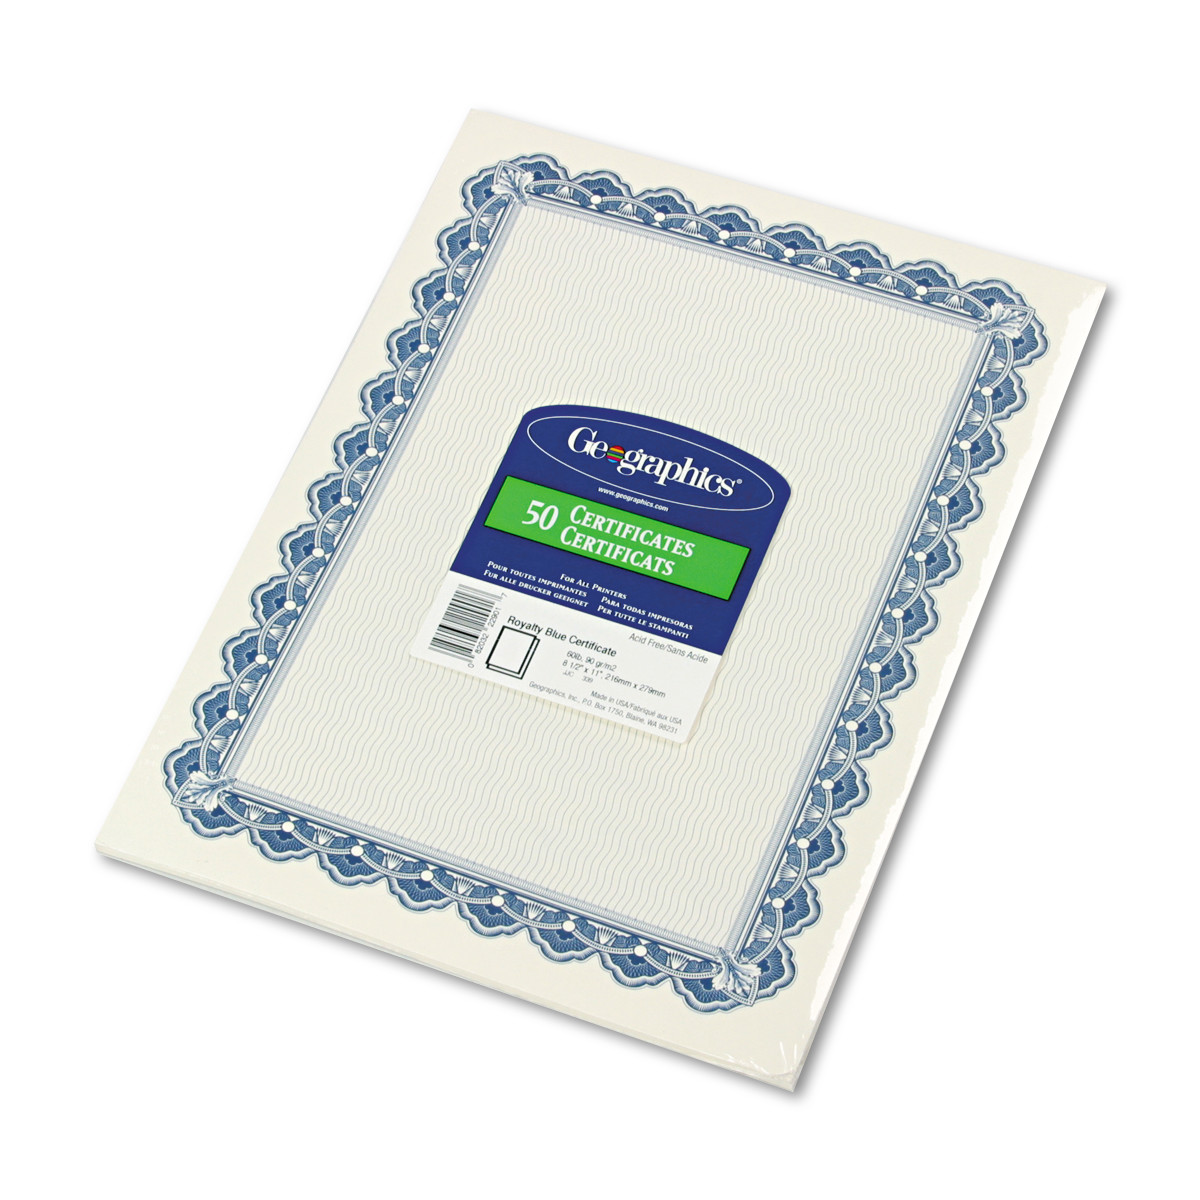 Geographics Parchment Paper Certificates, 8-1/2 x 11, Blue Royalty Border, 50/Pack -GEO22901